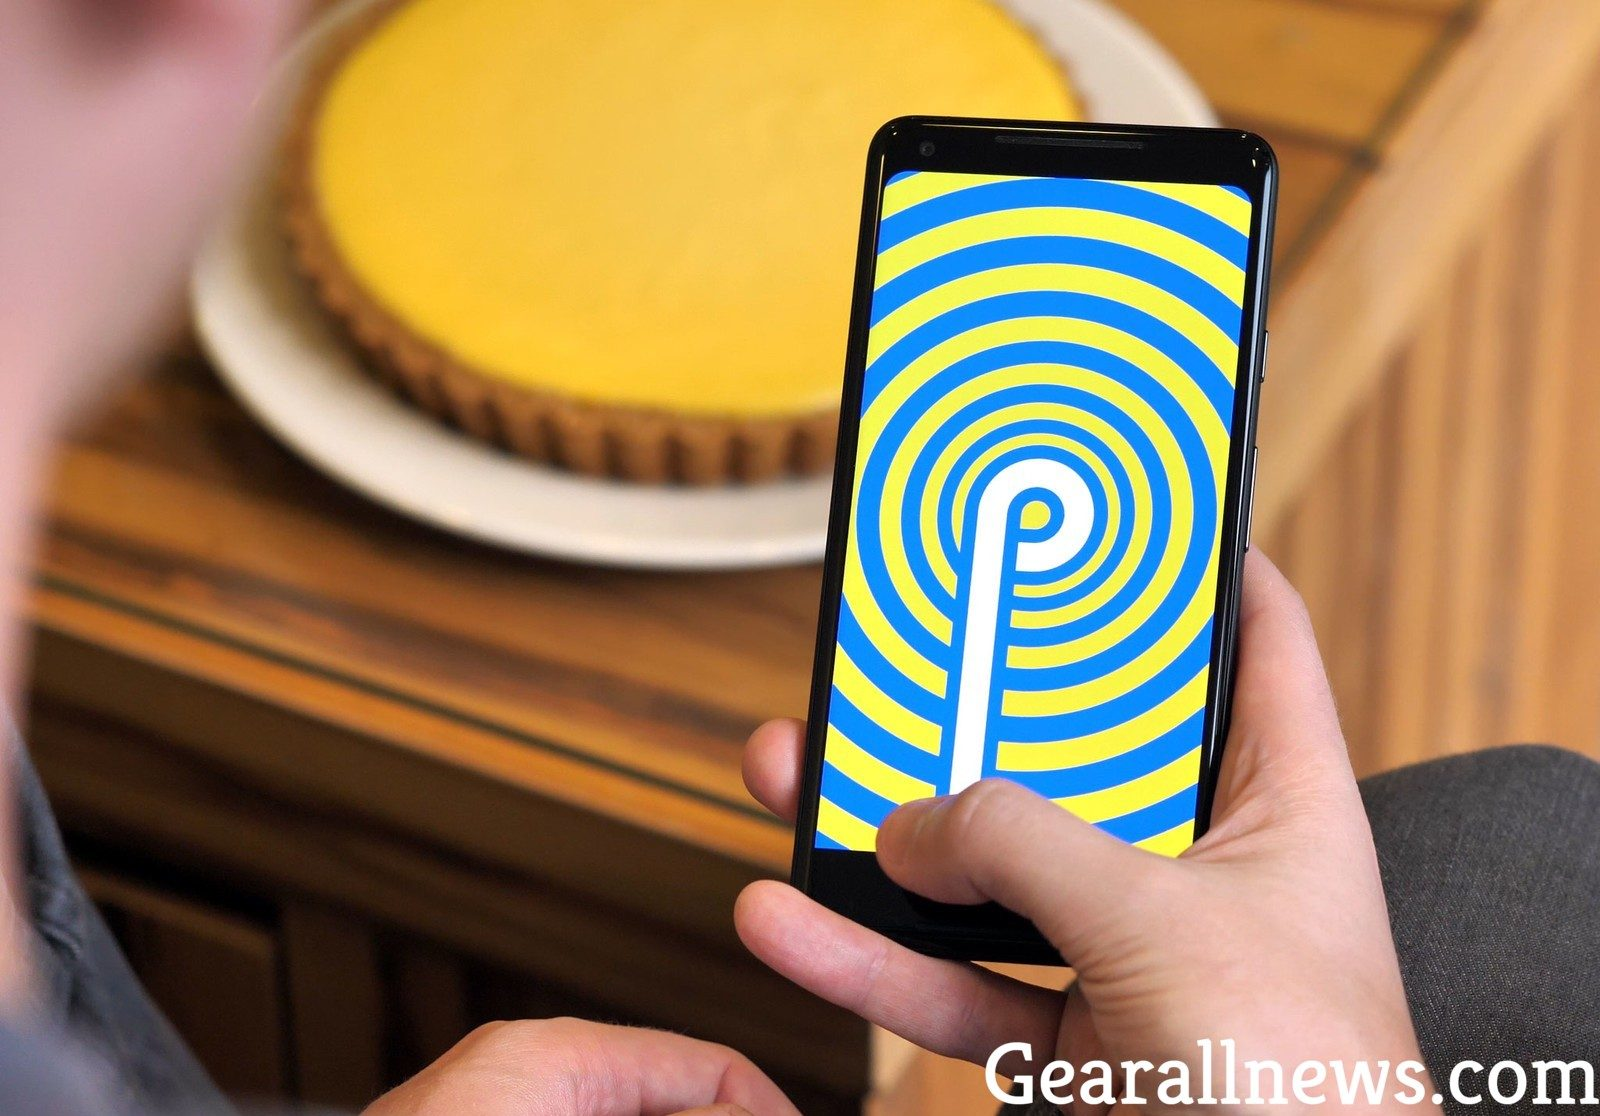 Install Android Pie 9.0 on Moto E 2015 via AOSP